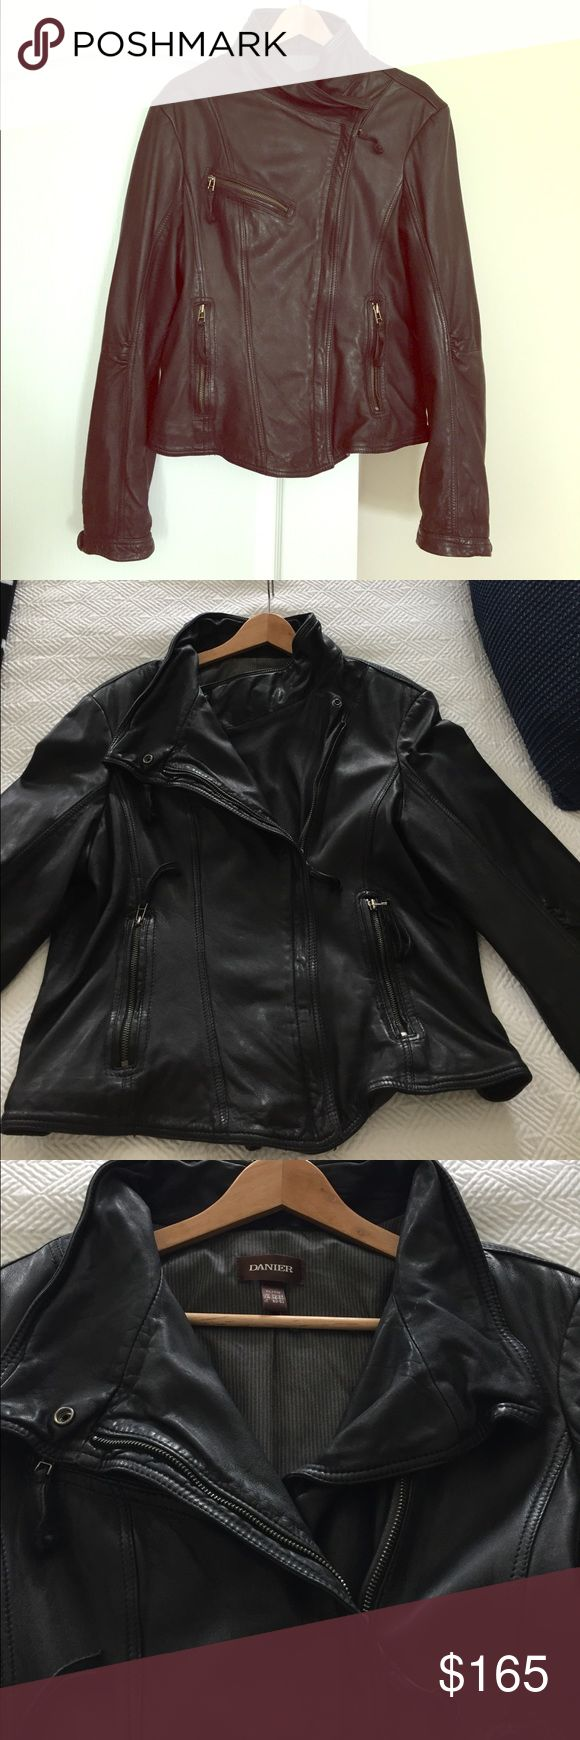 Danier Leather Moto jacket Heavy weight leather motorcycle jacket by Danier. Asymmetrical zip up and button closure, with zip pockets and leather pulls. Tab button and zip closure at wrists. Fitted body, hits at lower waist. Fully lined. Very warm and the leather is soft and flexible. Only wore a handful of times because the sleeves were a little too long for me. This jacket is very high quality, not cheap thin leather, it's nice and thick. Purchased in Whistler B.C. It's XL but feel it fits…